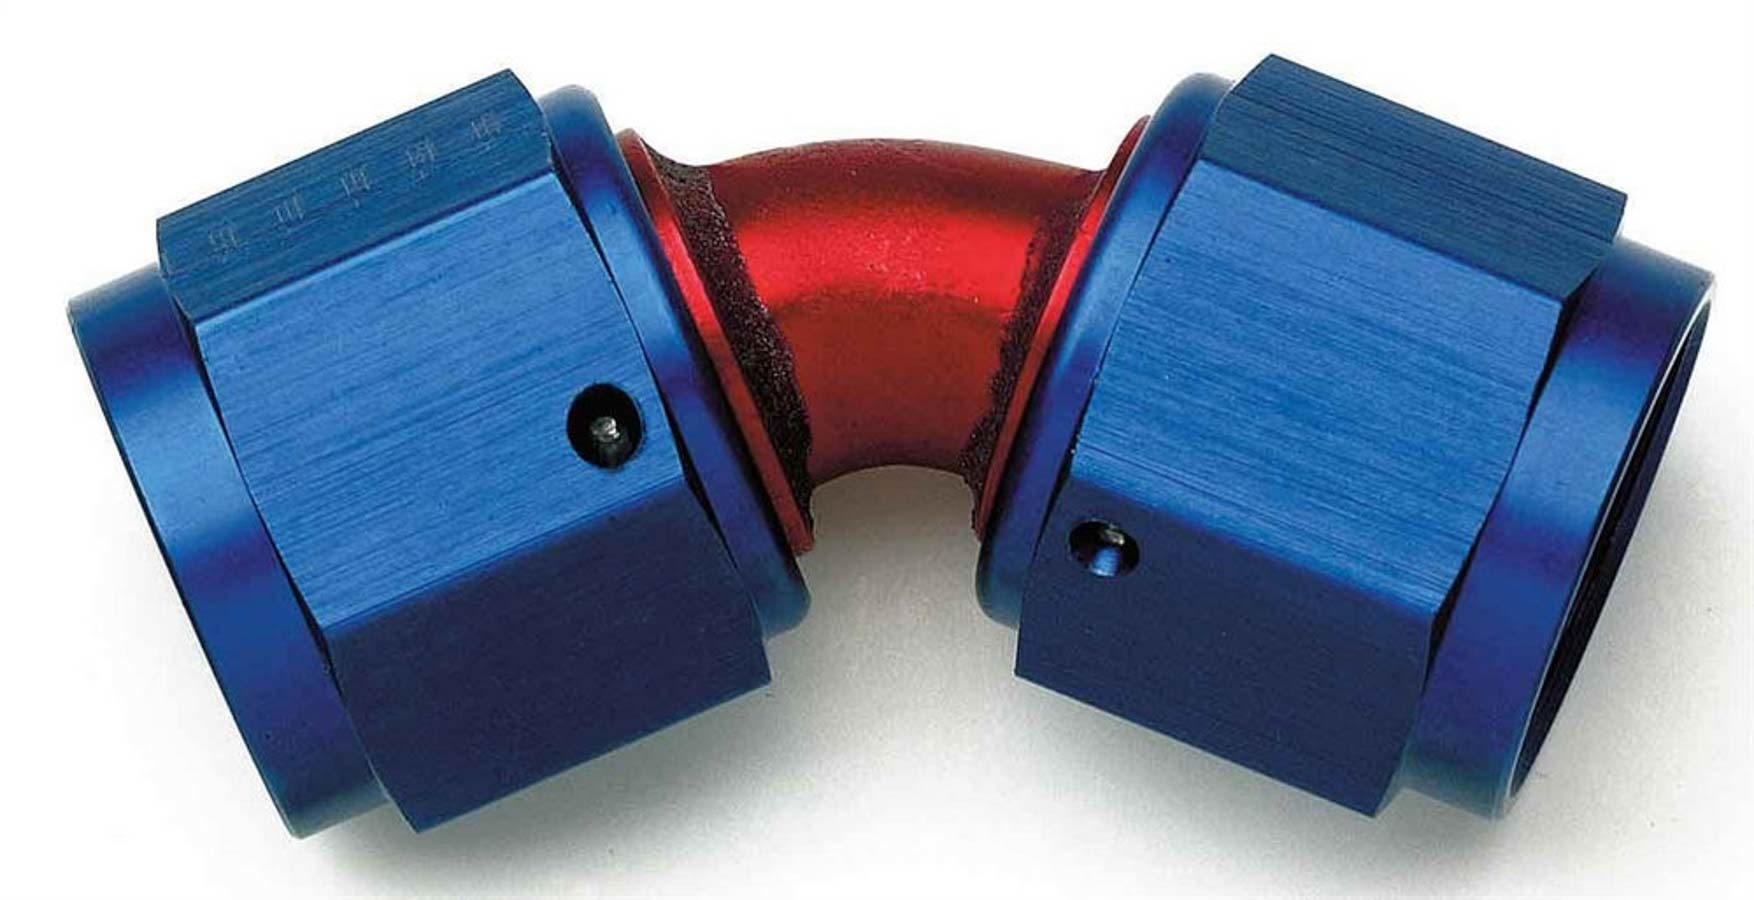 Aeroquip FCM2972 Fitting, Adapter, 45 Degree, 8 AN Female Swivel to 8 AN Female Swivel, Aluminum, Blue / Red Anodize, Each